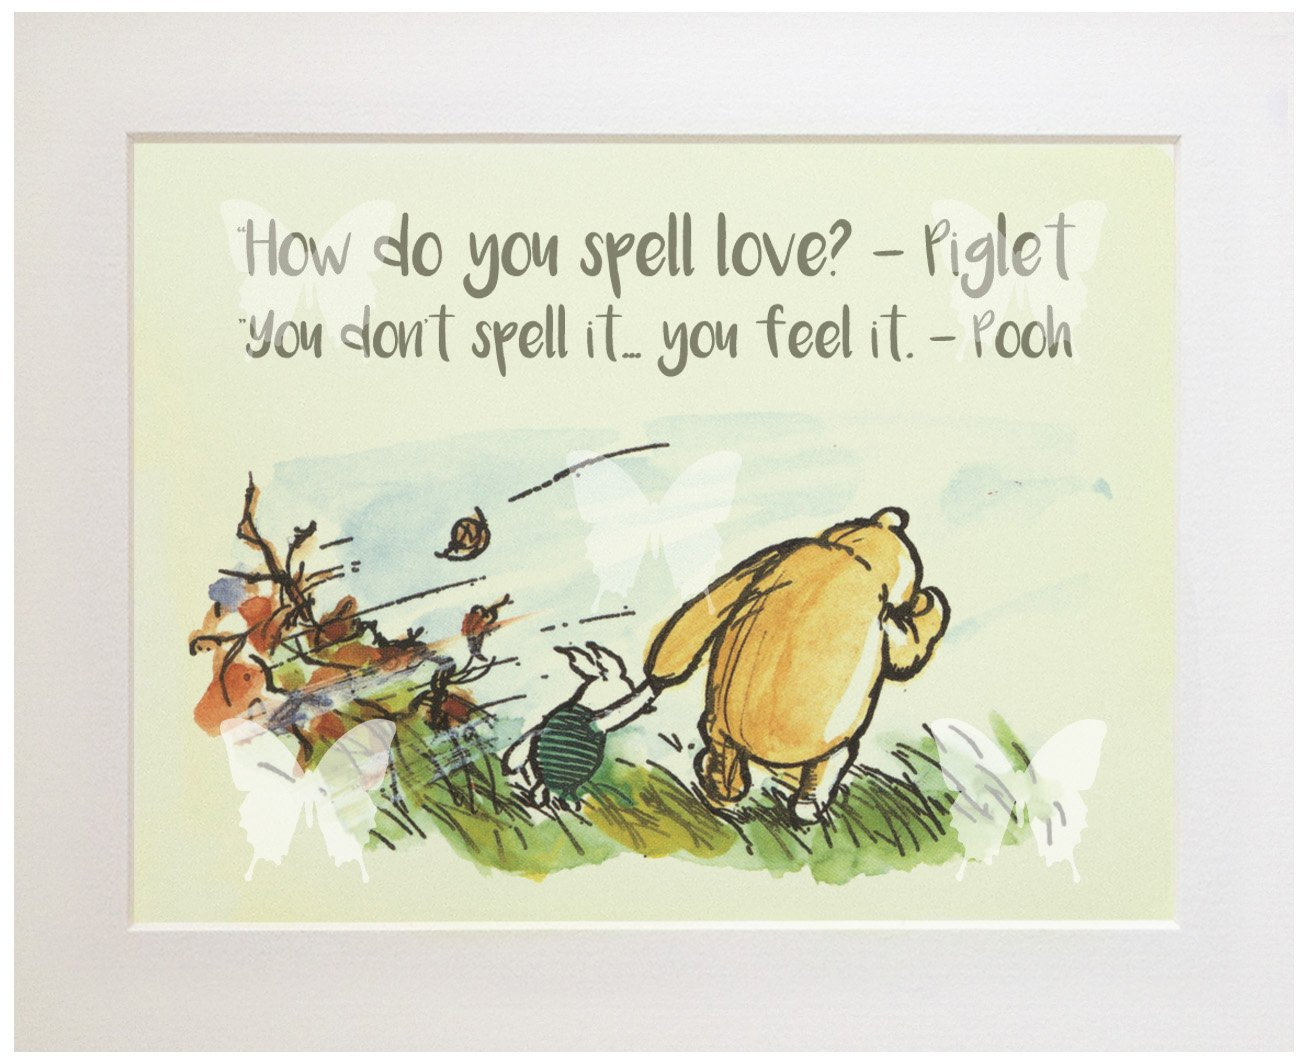 CLASSIC WINNIE THE POOH QUOTE PRINT (UNFRAMED), New Baby/Birth, Baby Shower, Christening, Nursery Picture Gift, How do you spell love? The Blue Butterfly Emporium